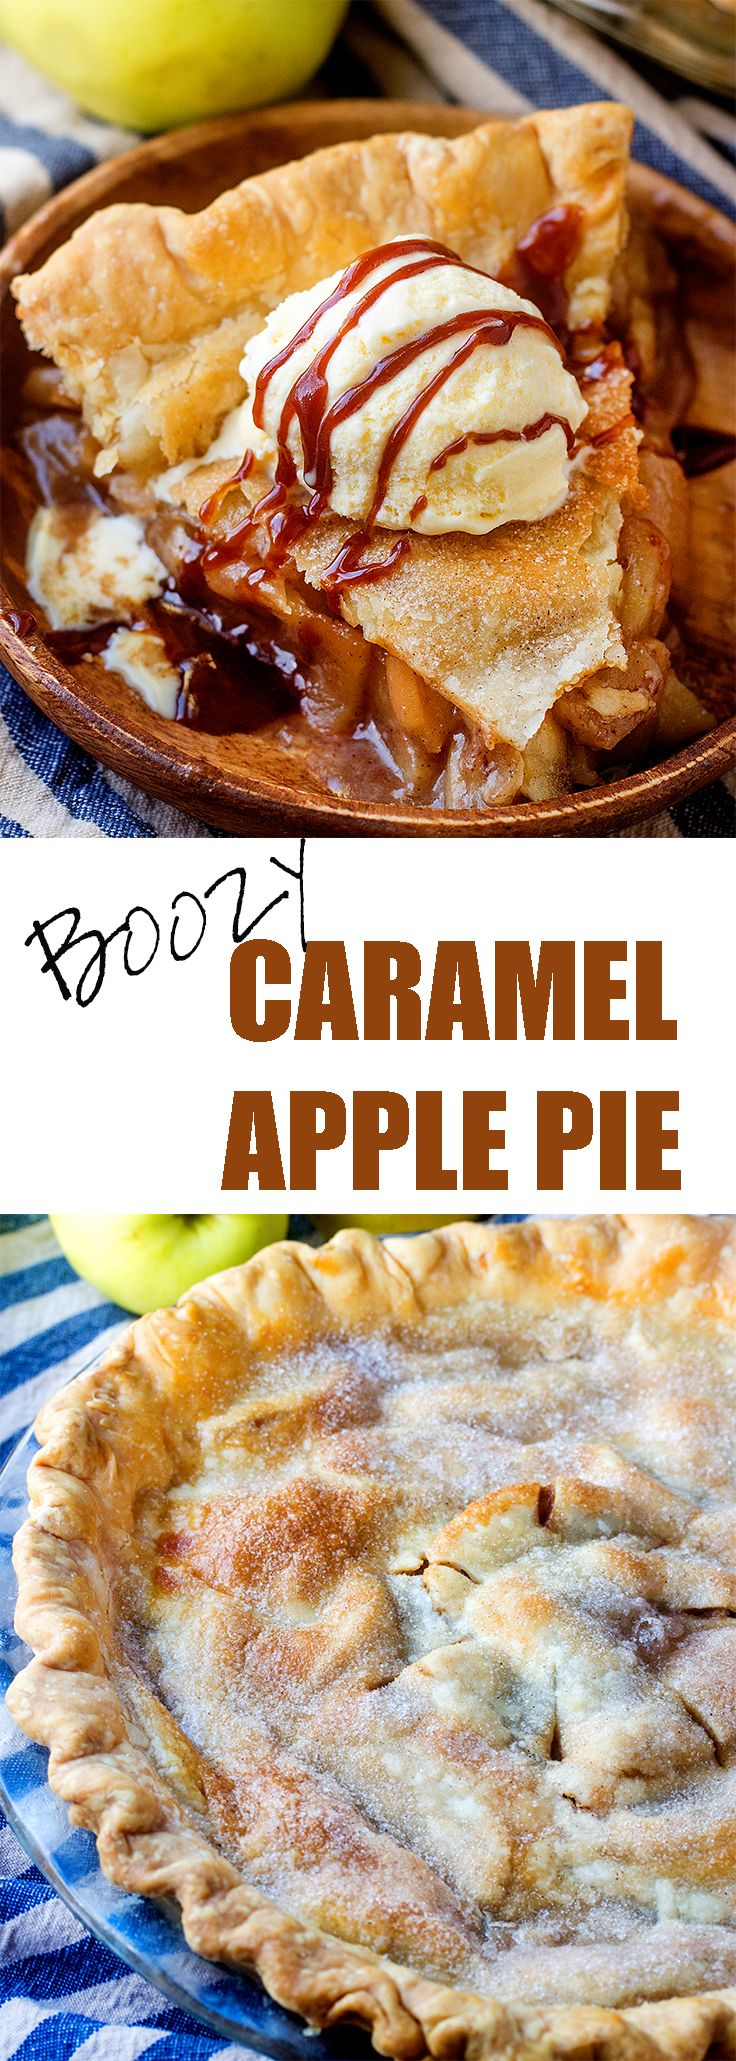 This is NOT your grandma's caramel apple pie! (Well, unless your grandma was a lush like mine...) #iambaker #applepie #caramelapple #applepie